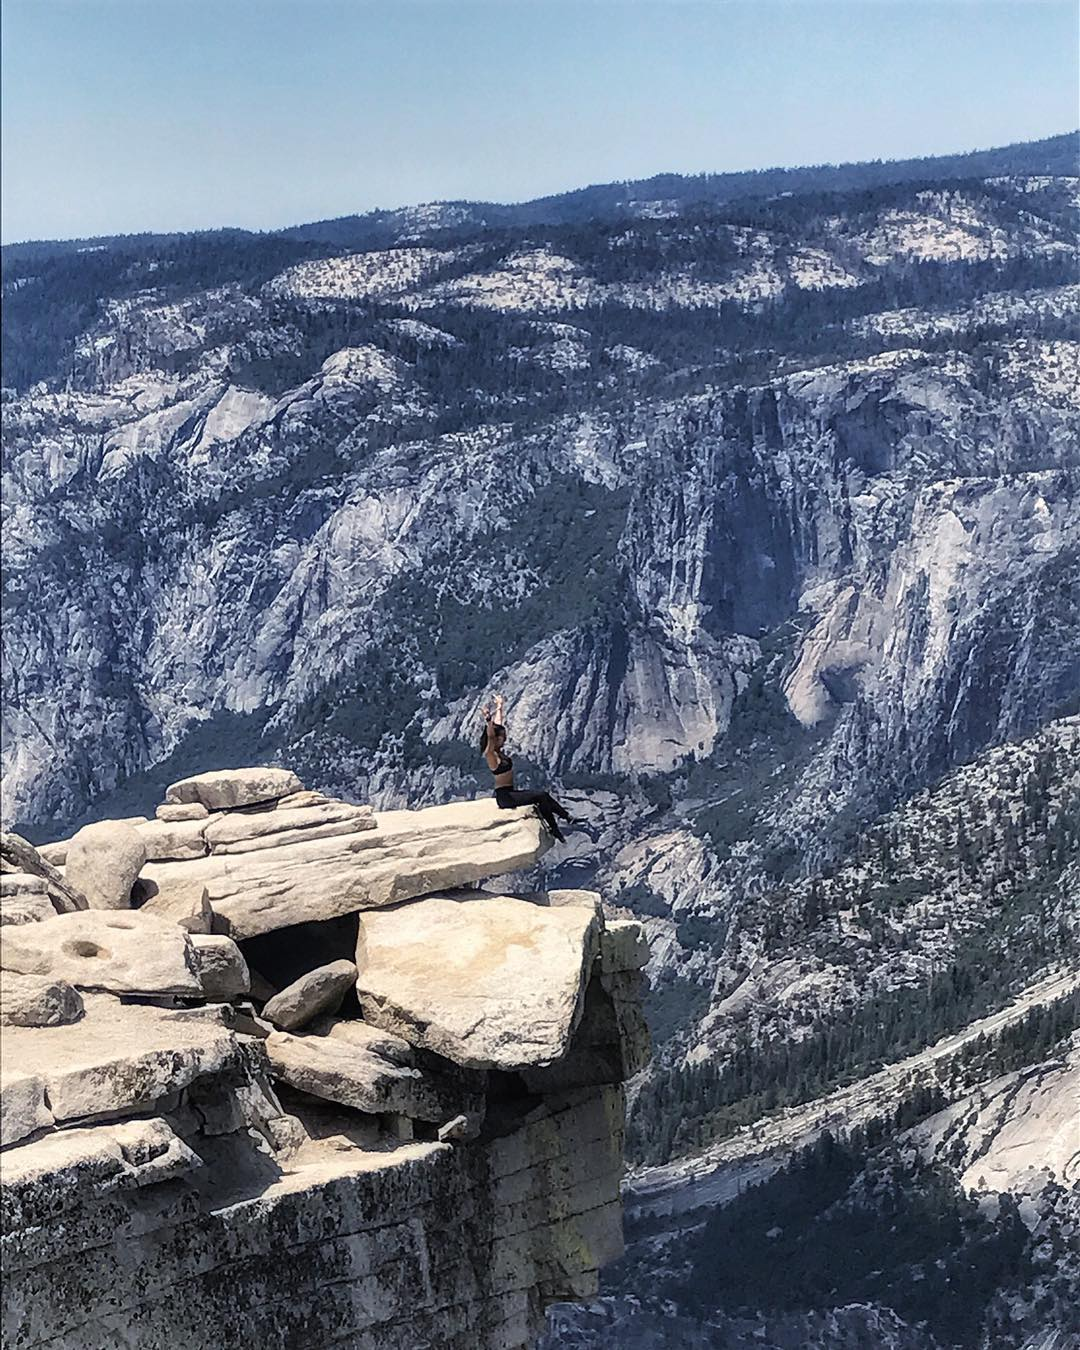 6 Great Summer Hikes in the United States - Half Dome, Yosemite National Park in California